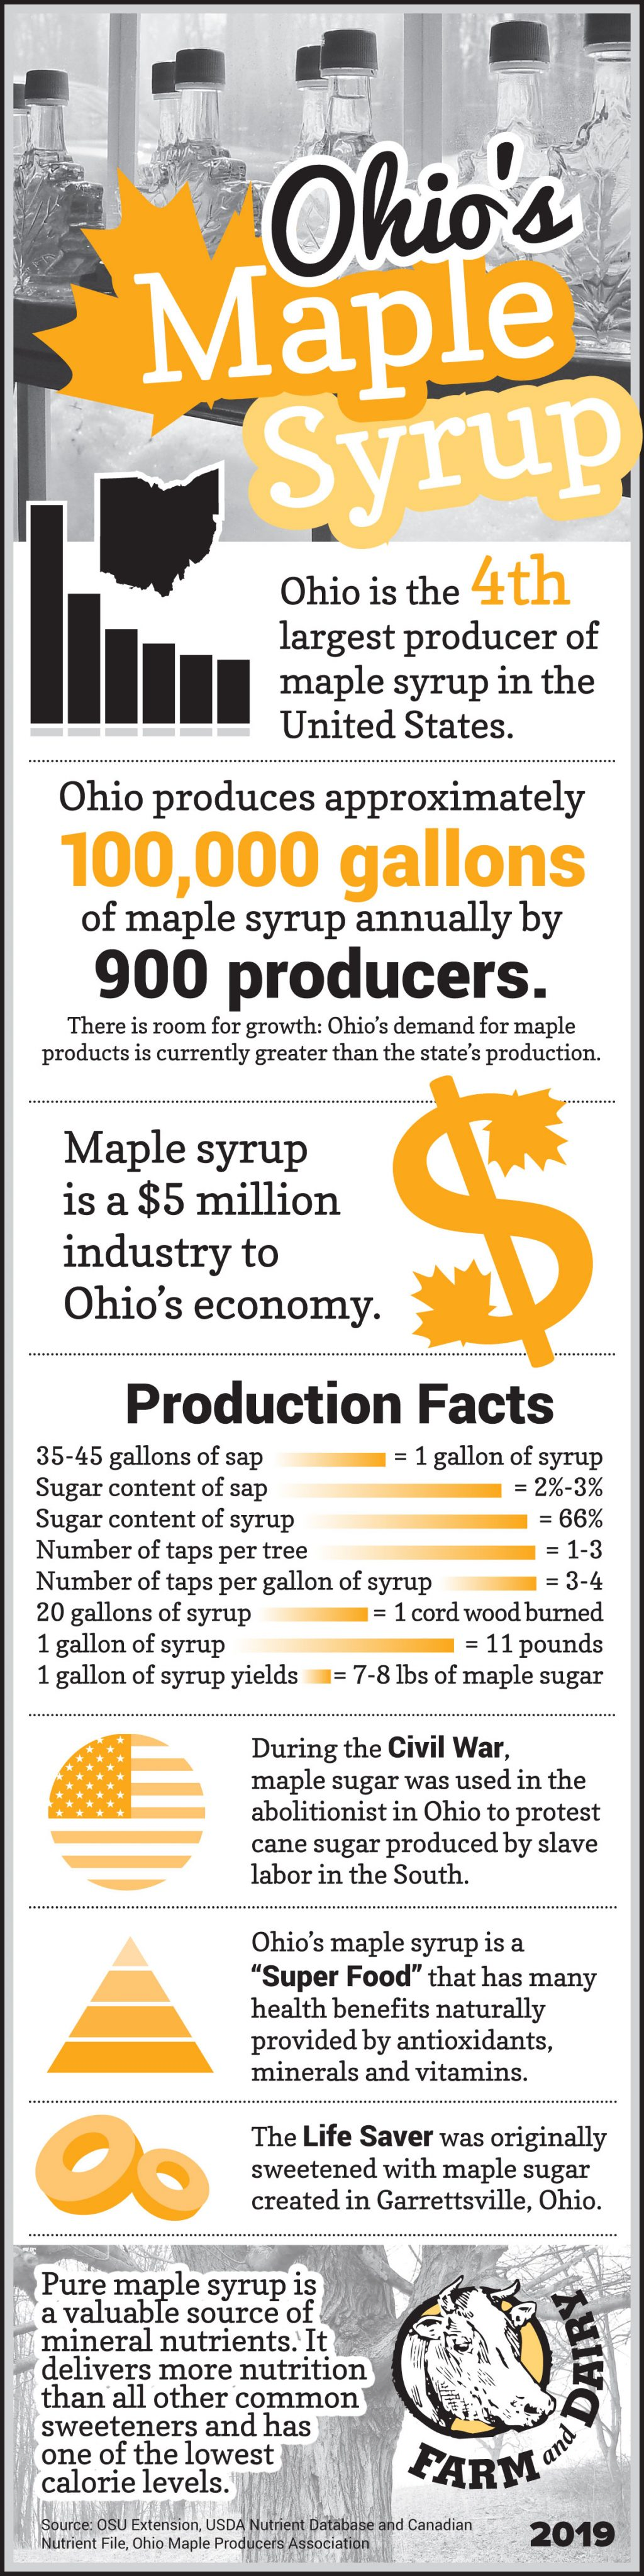 Ohio maple syrup